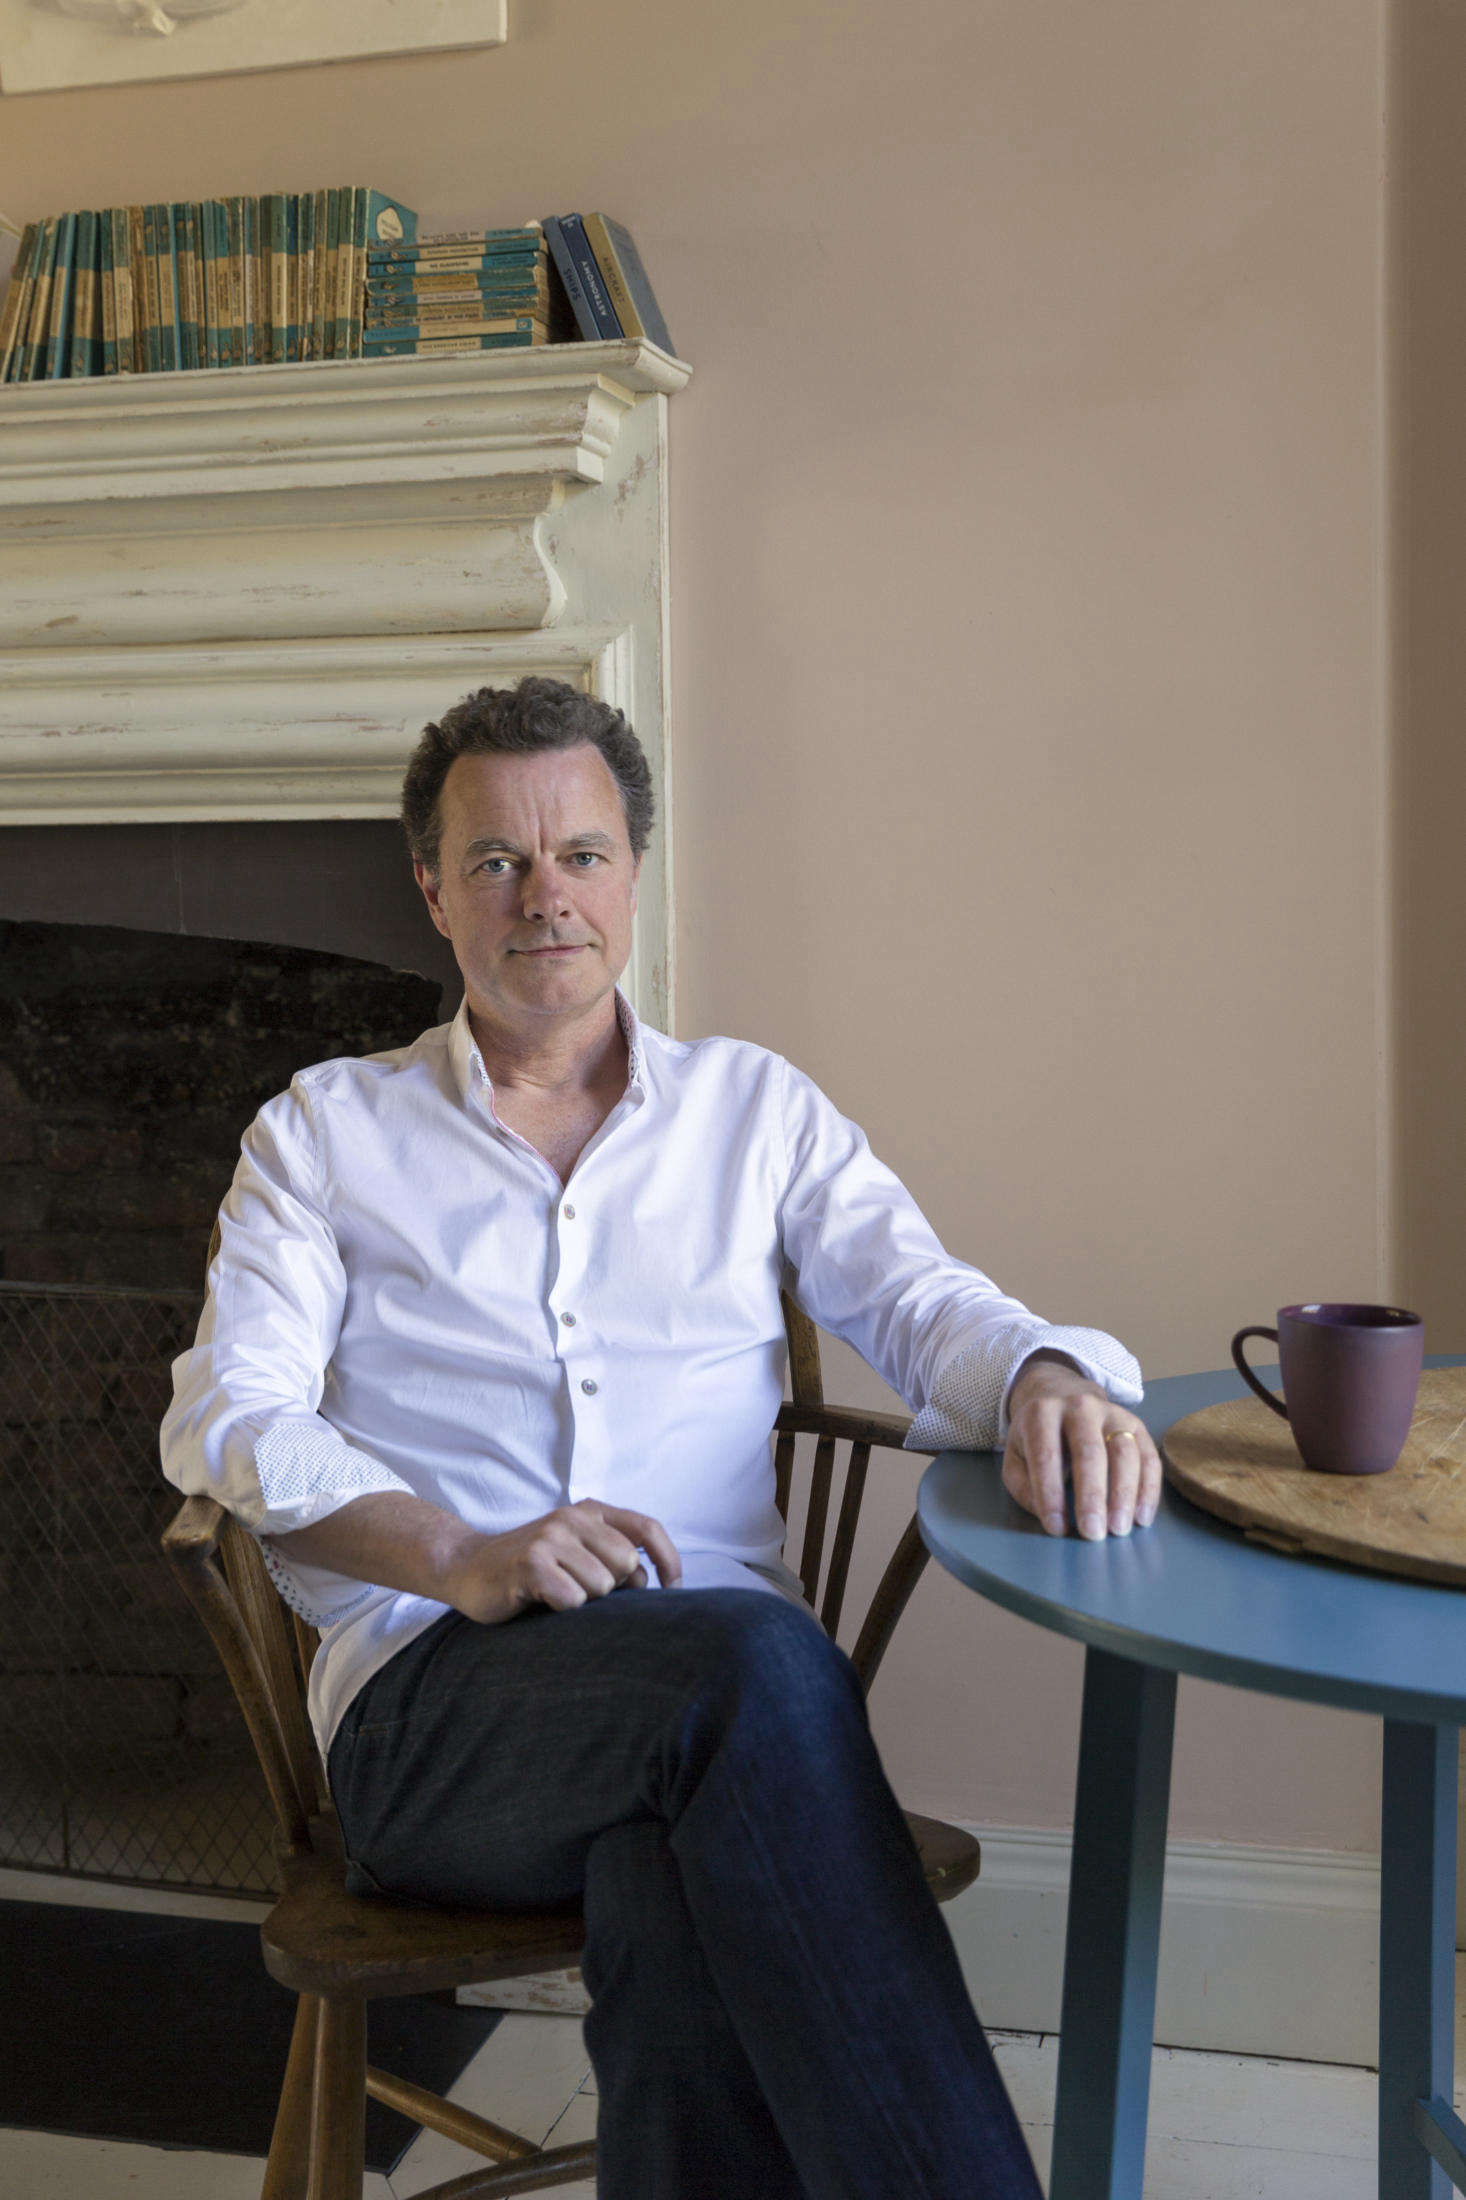 """Nick Gilpin purchased the house in 2013—and had the resources and stamina to see it through. """"His genius is in masterminding the details that you can't see, such as the cleverly concealed uplights in all the window recesses that beautifully wash the paneling,"""" says Harding. """"Historic houses and good design are his great loves."""" Photograph by Claudia Rocha, courtesy of Howe."""